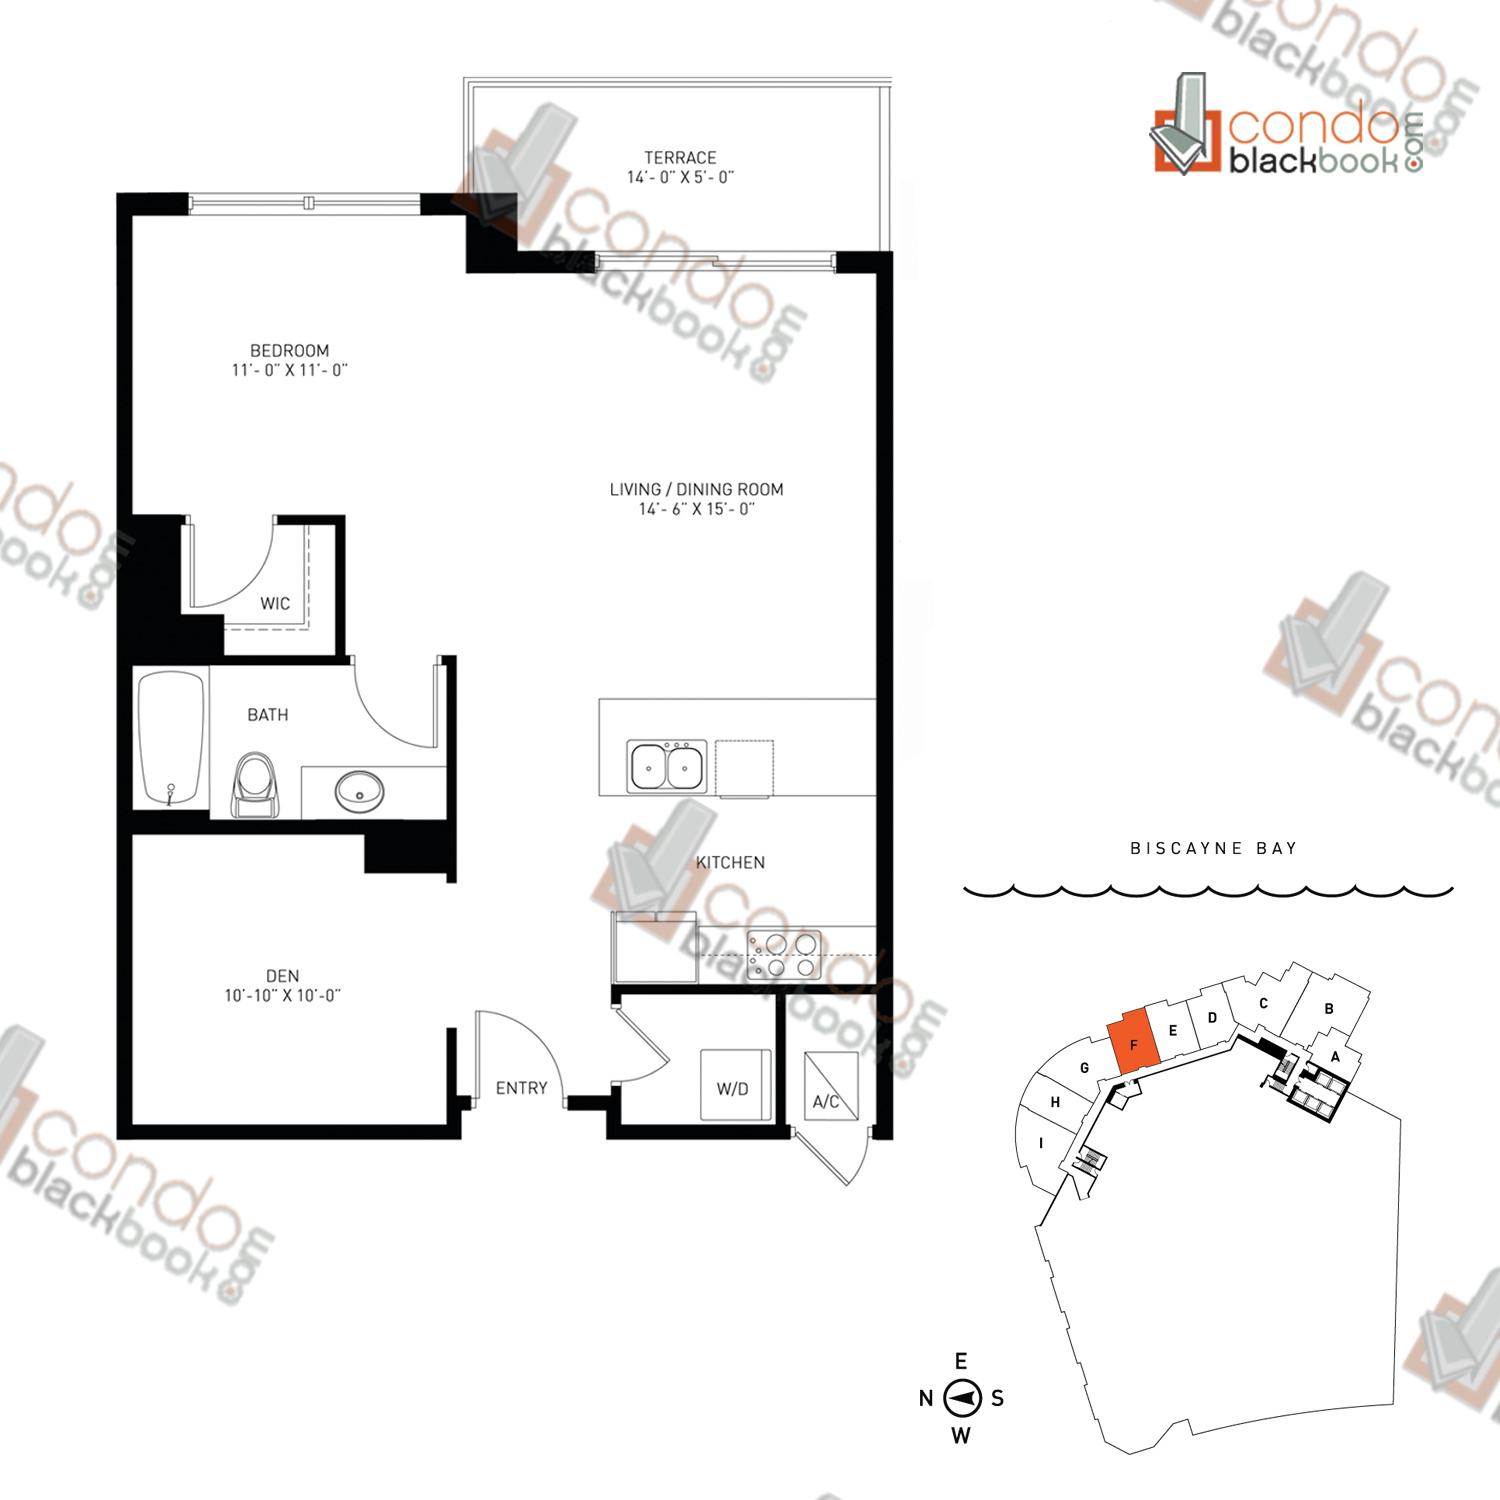 Floor plan for Quantum on the Bay Edgewater Miami, model Loft_F, line South Tower - 06, 1/1 +Den bedrooms, 816 sq ft